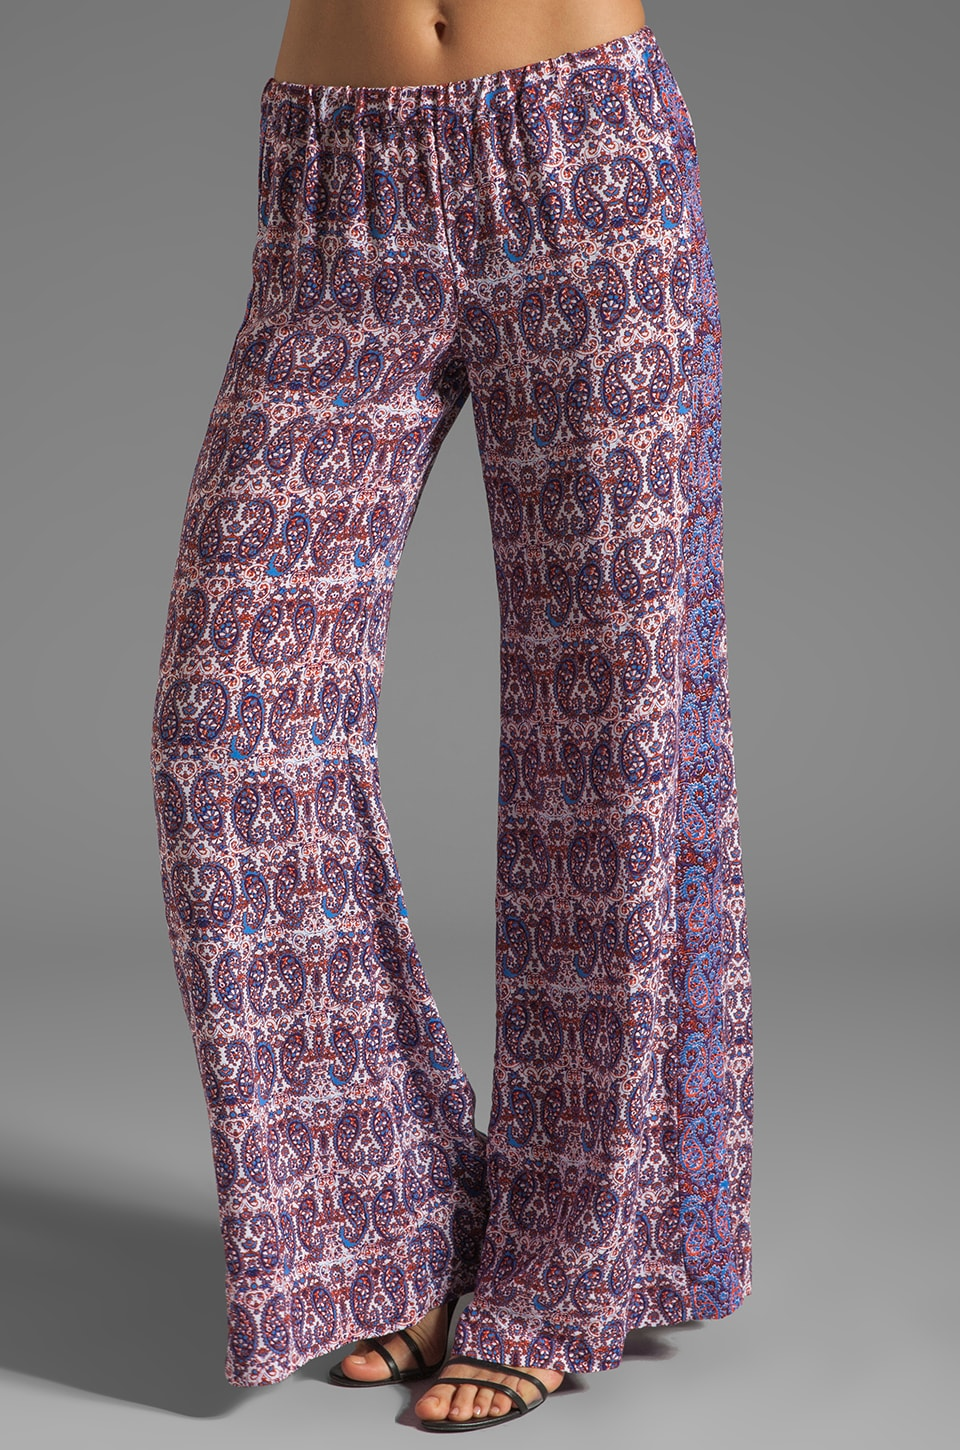 Ella Moss Kasbah Paisley Pant in Royal